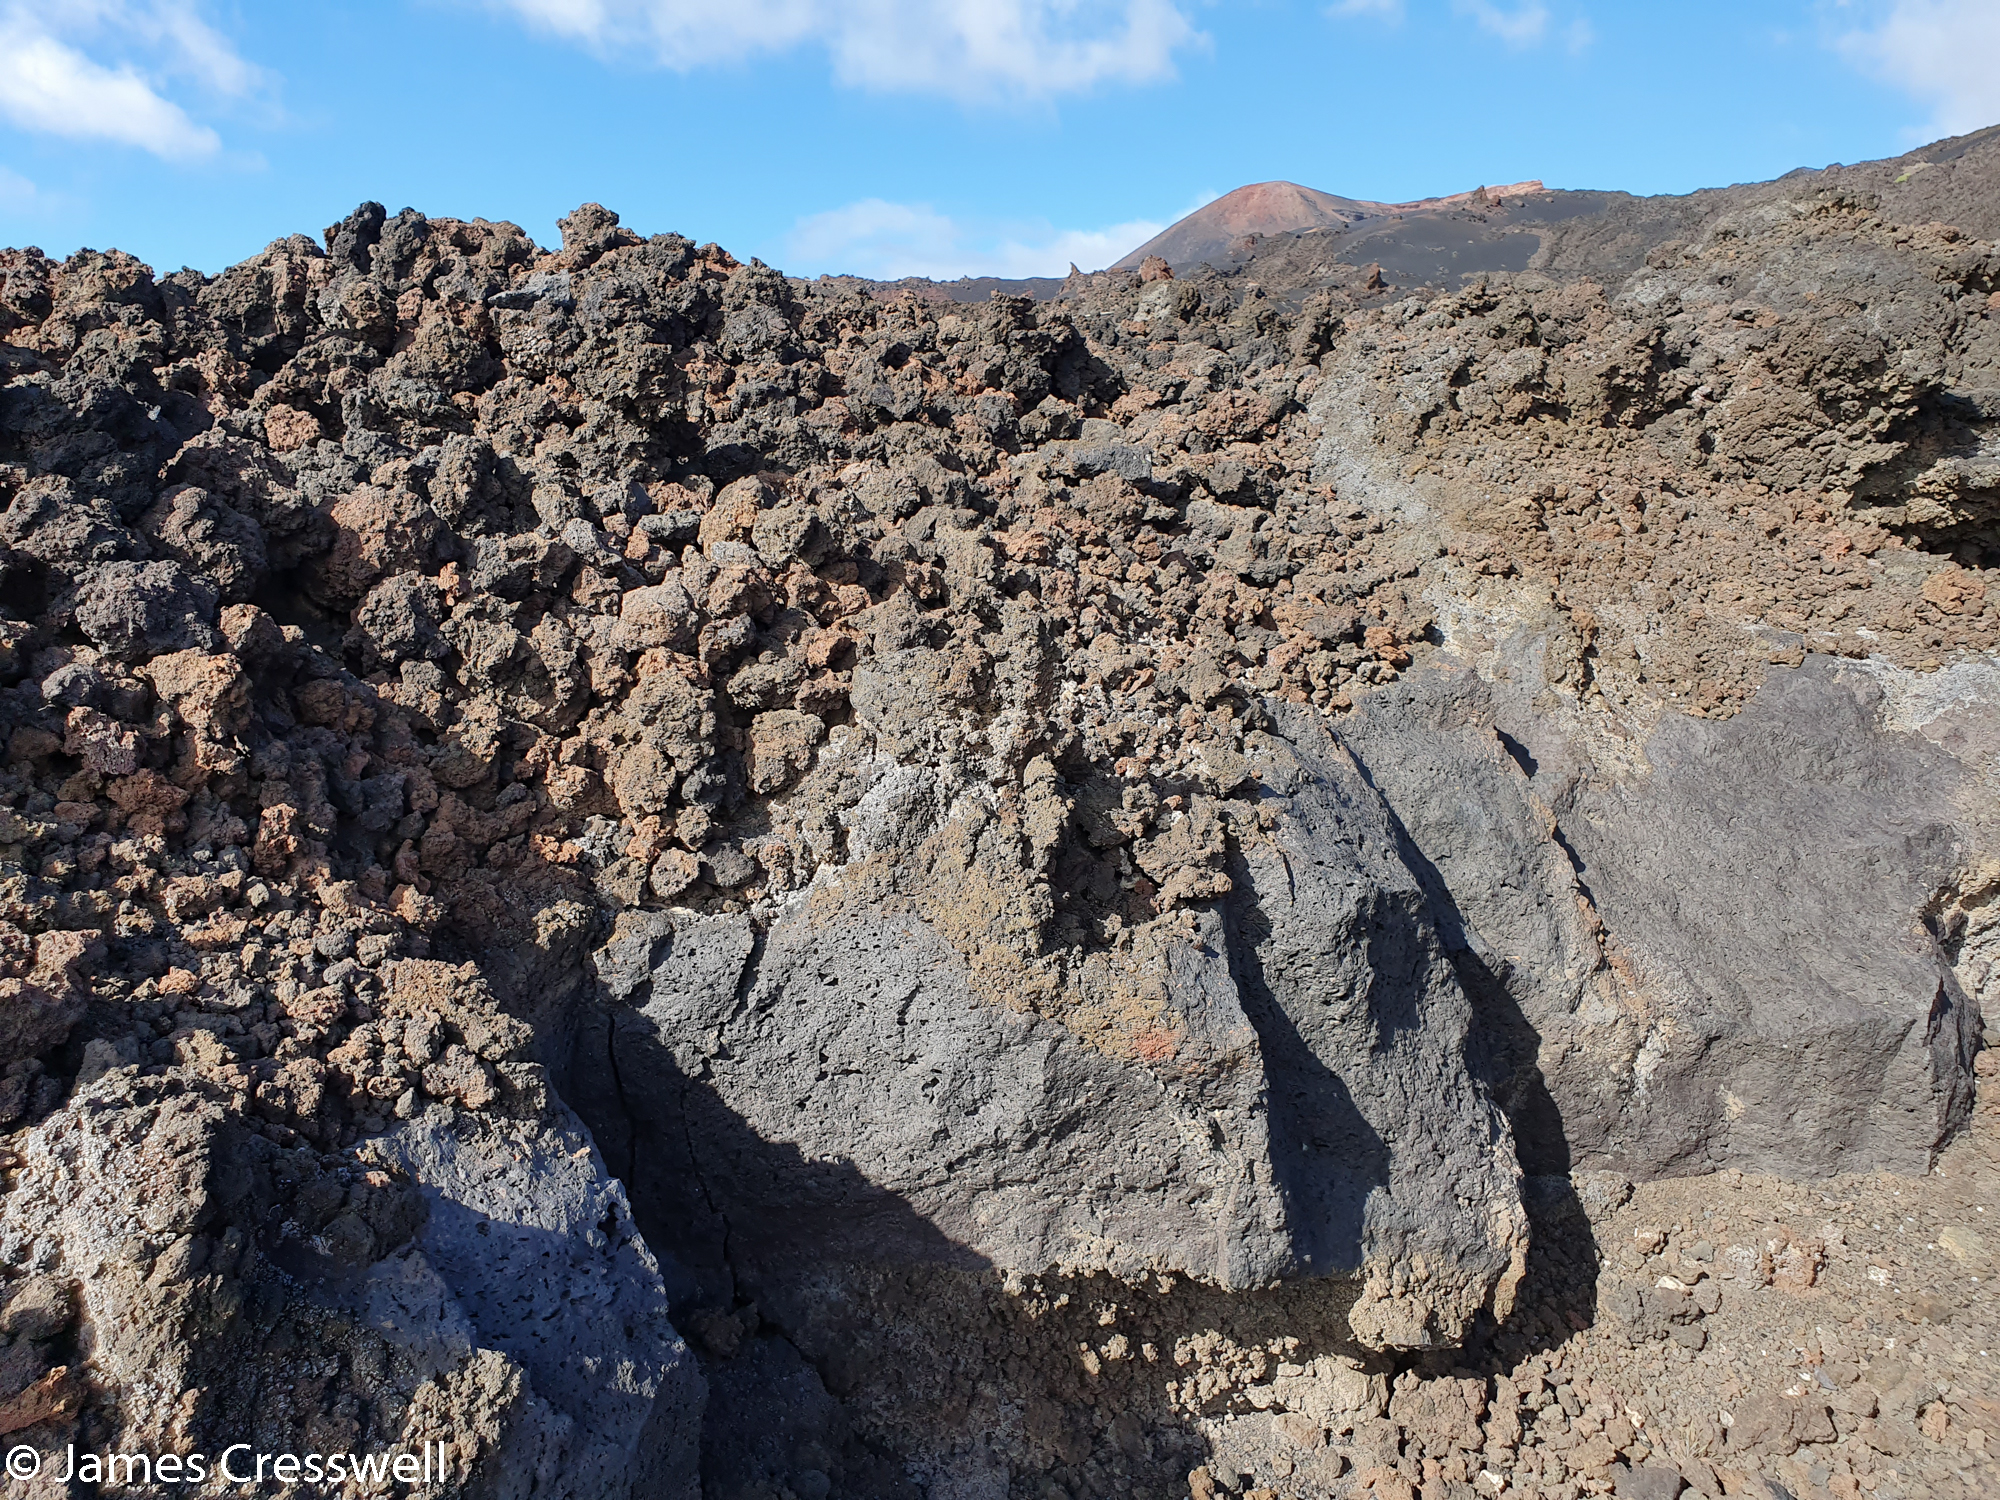 Solidified lava flow in the foreground with volcanic cone in the background